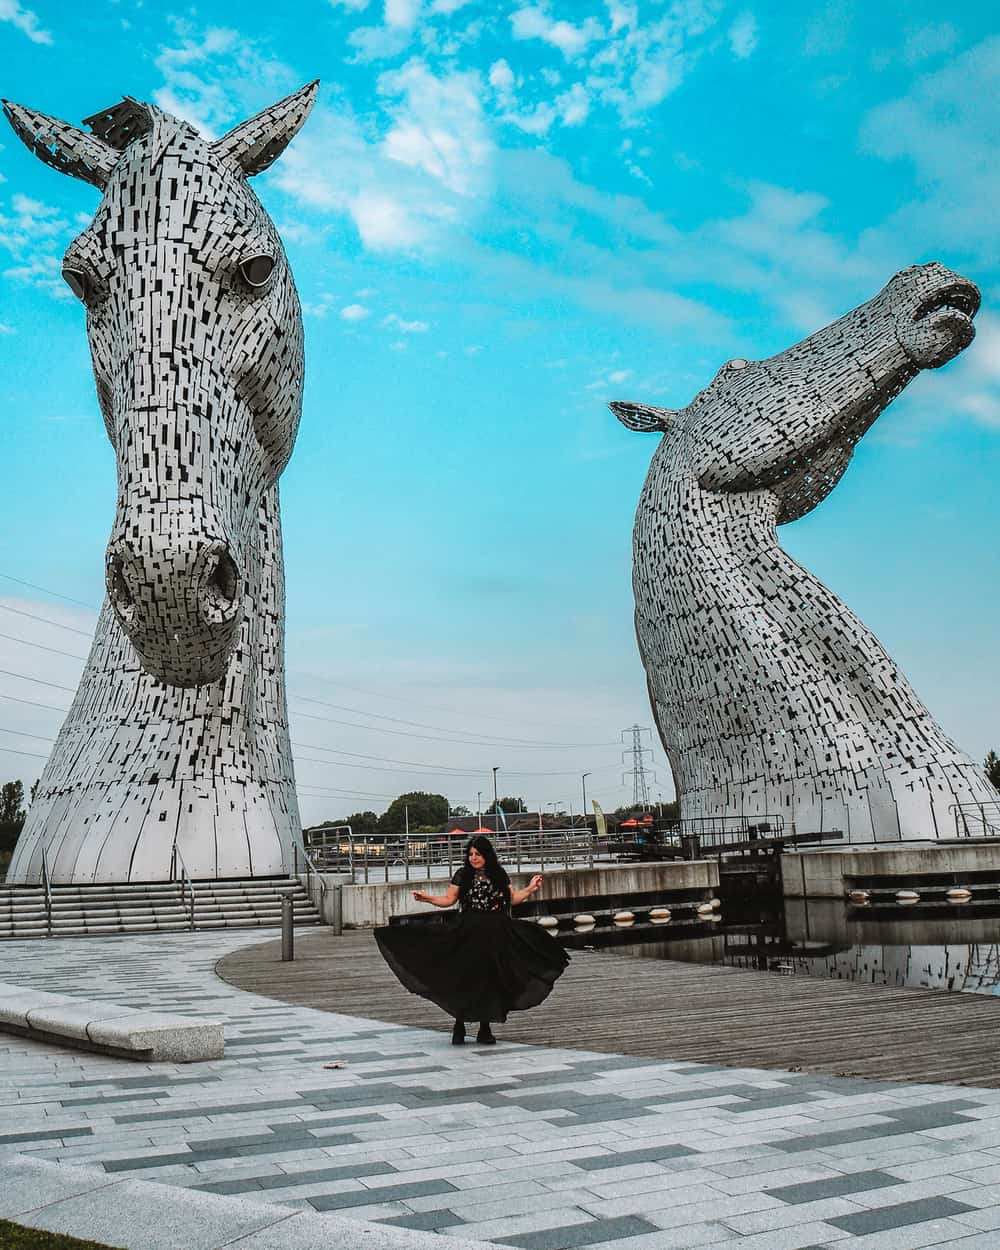 How to Visit the kelpies in Scotland